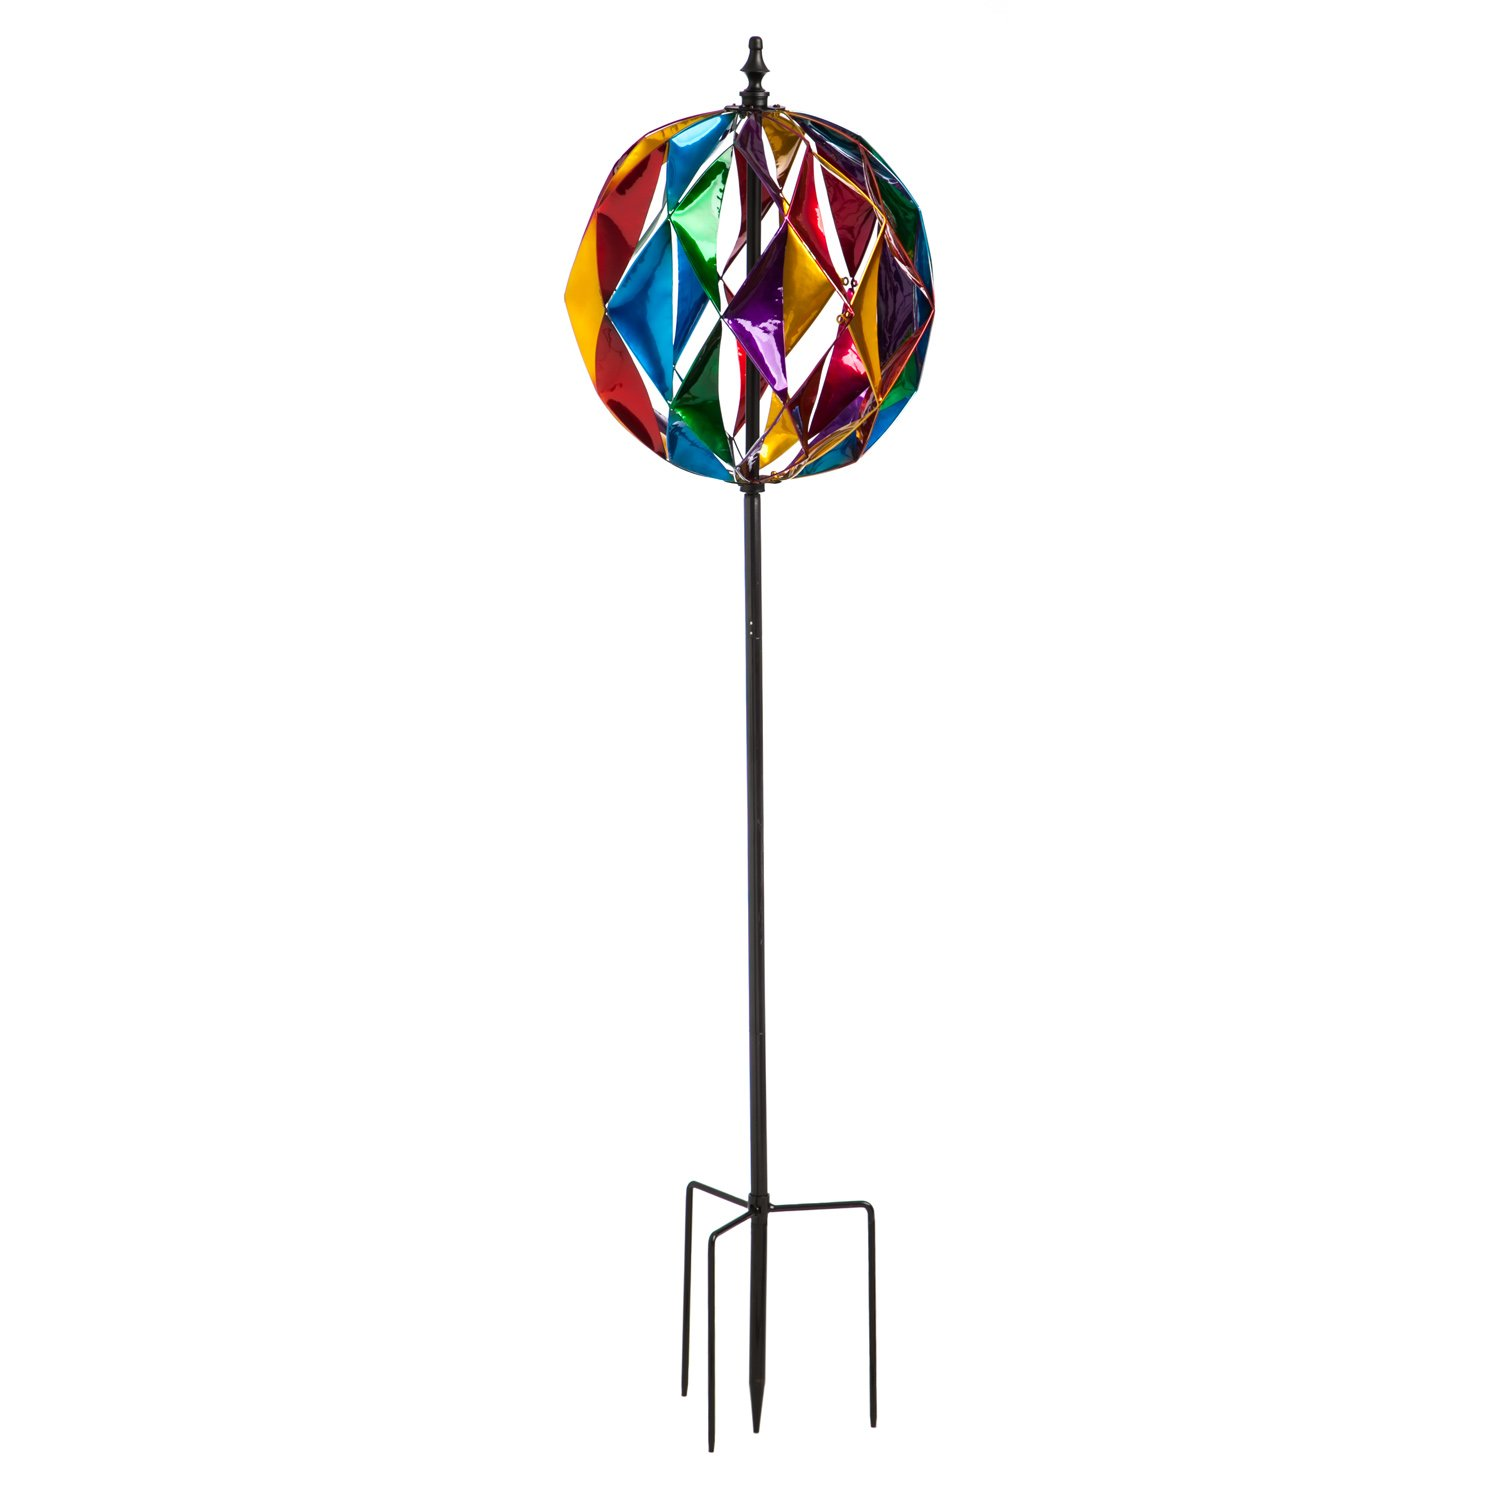 Evergreen 75-inch Colorful Ball Outdoor Safe Kinetic Wind Spinner Garden Stake